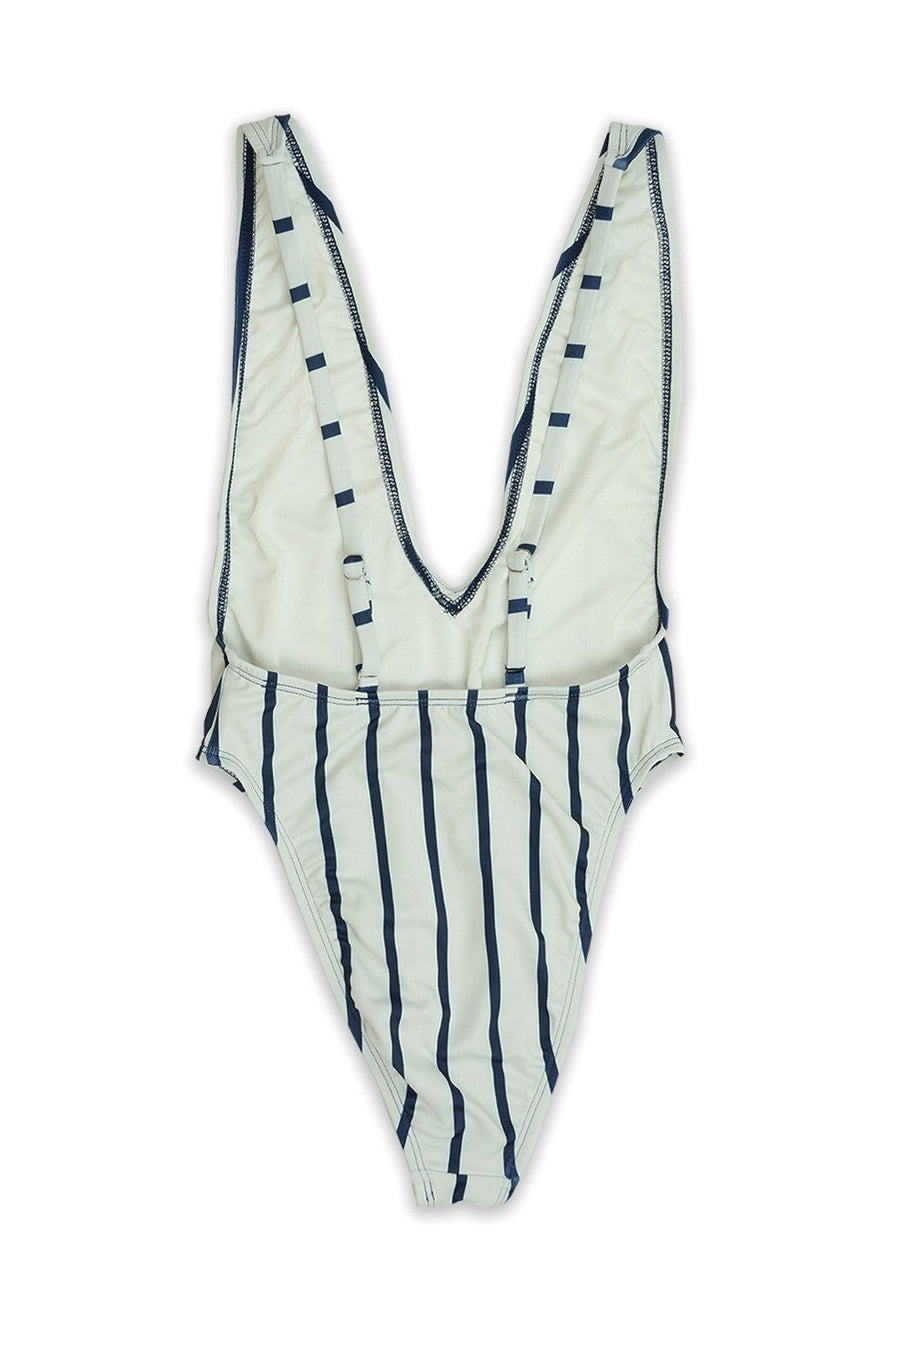 Navy Stripe High Cut Low V-Neck One Piece Front - Dippin' Daisy's Swimwear